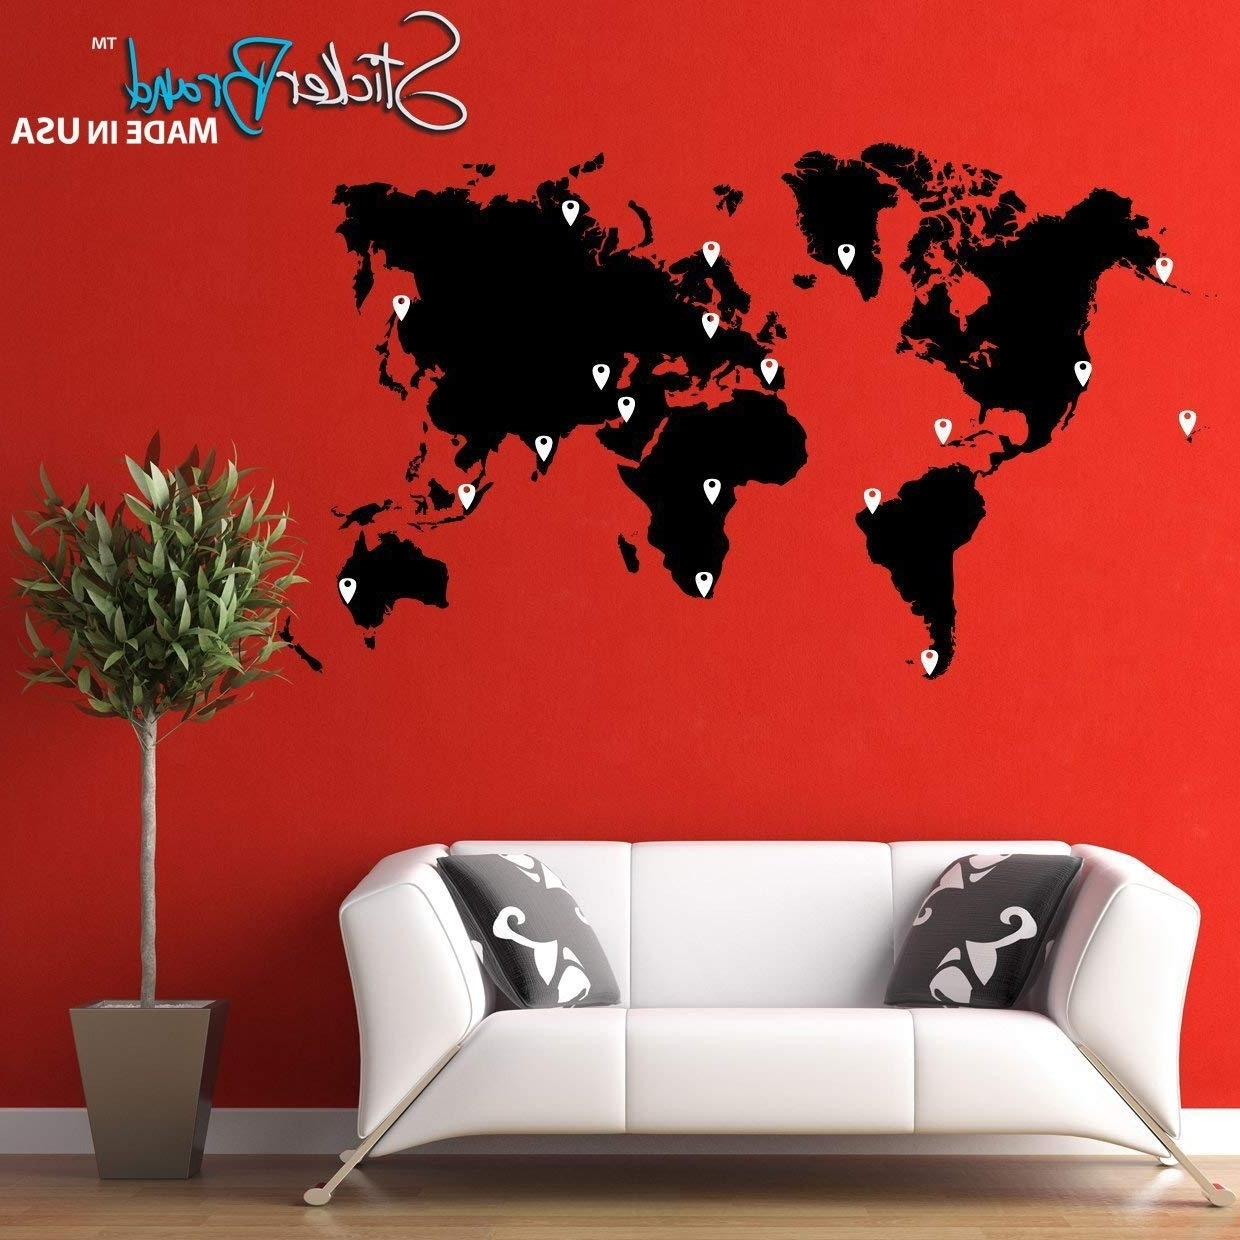 Amazon: Stickerbrand Vinyl Wall Art World Map Of Earth With Pin Within Most Up To Date Vinyl Wall Art World Map (Gallery 6 of 20)